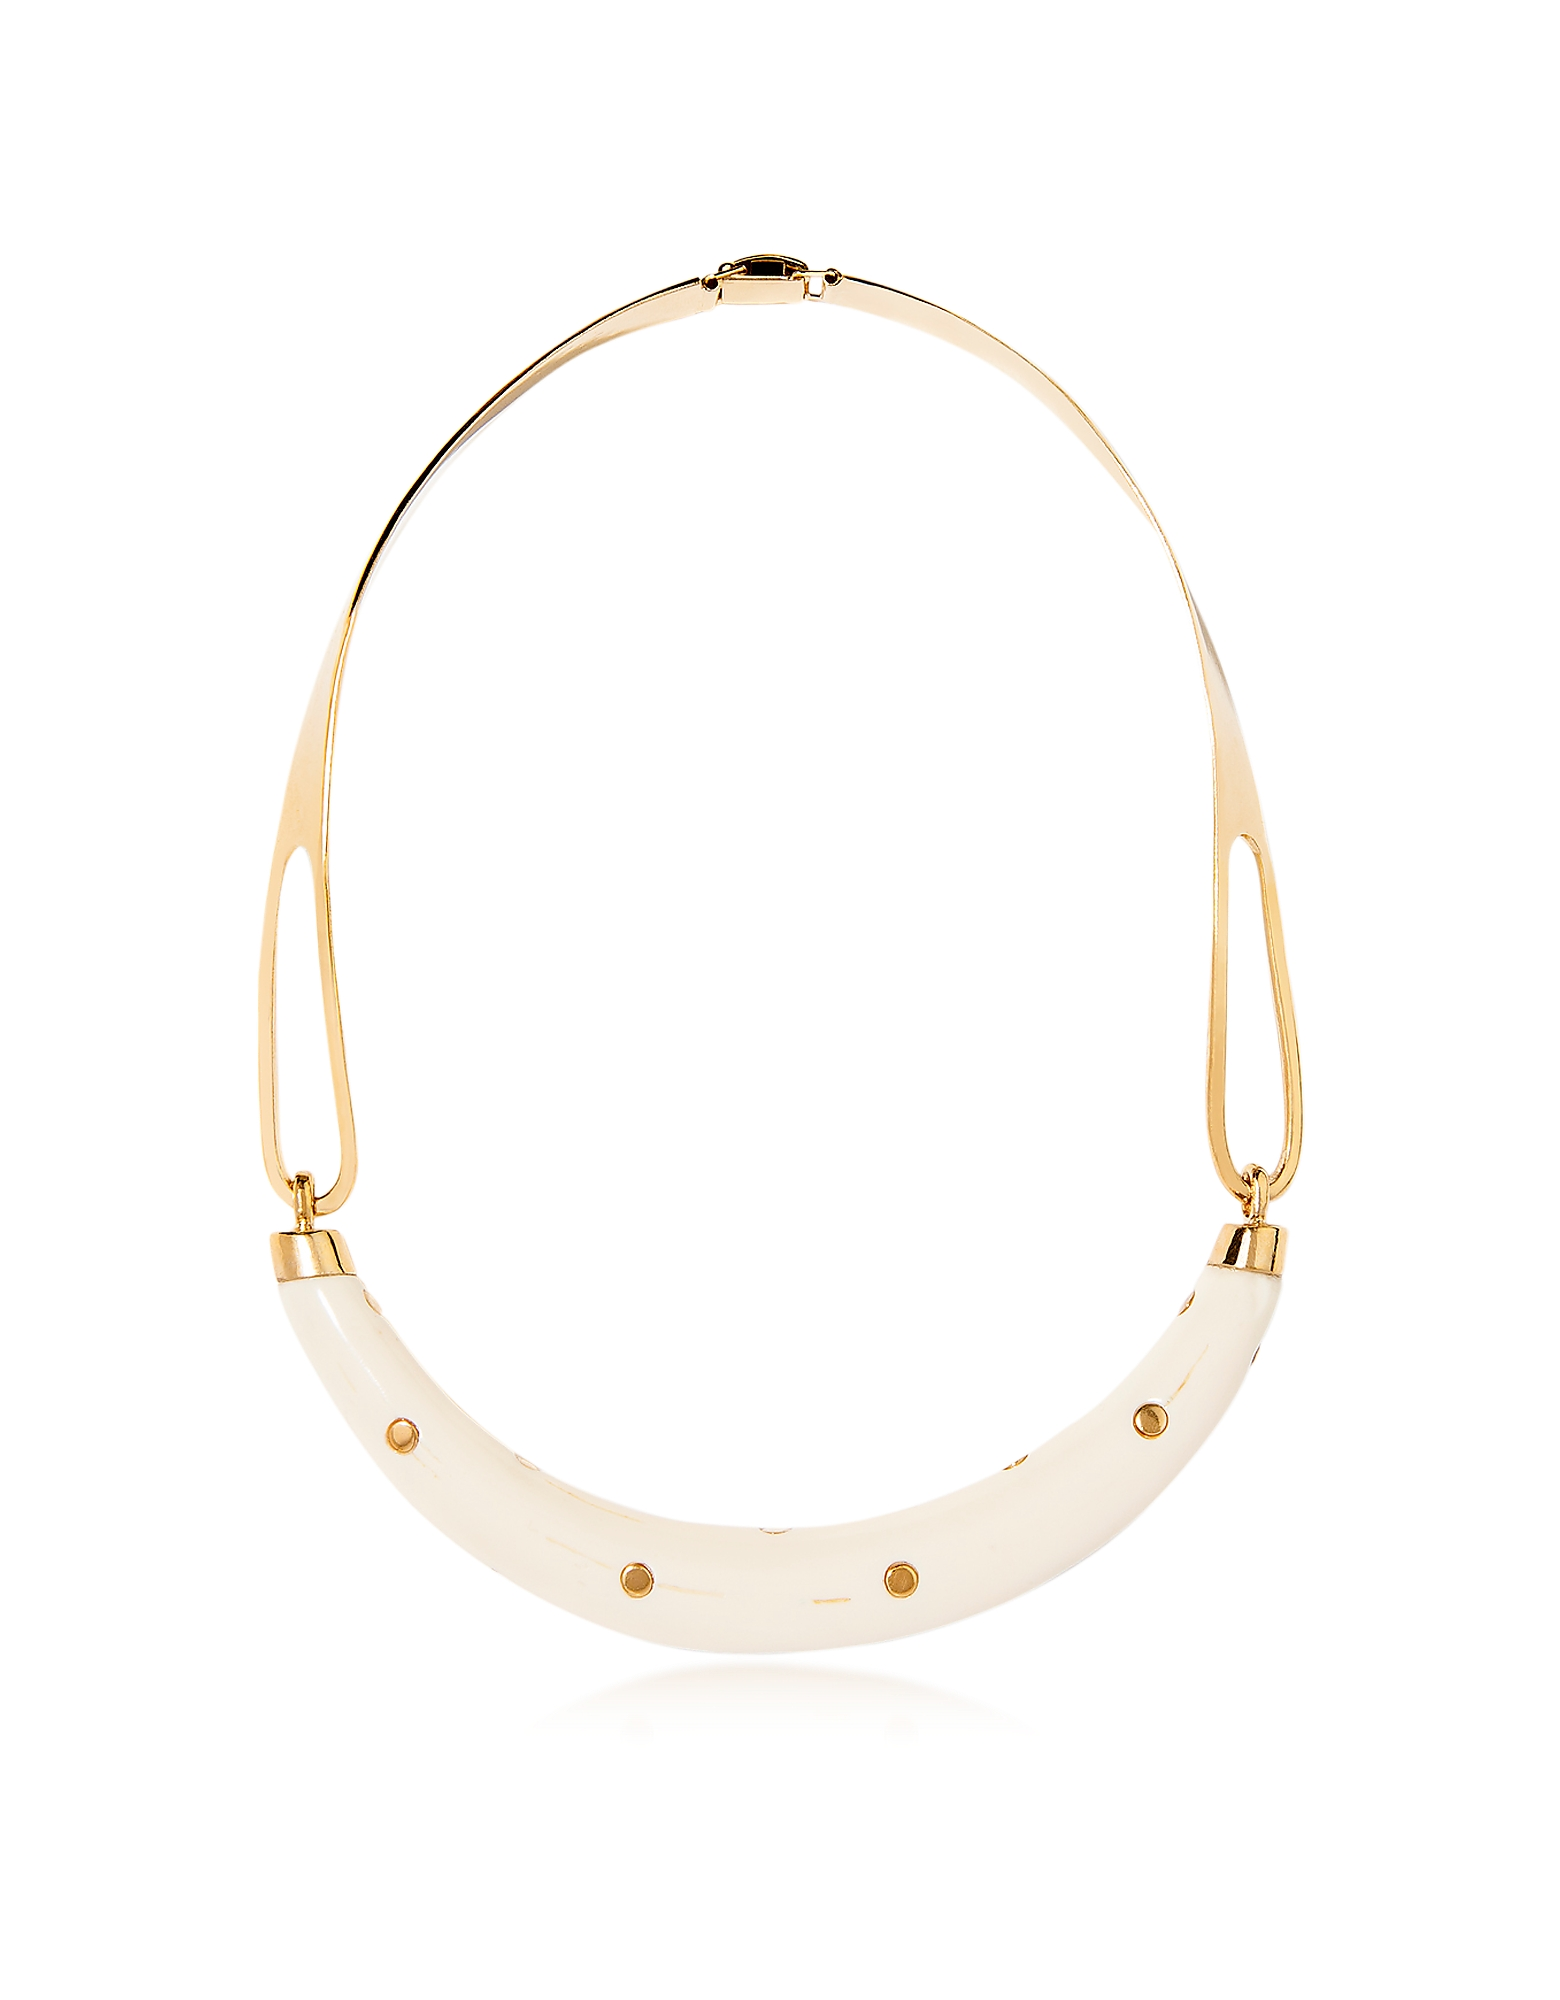 Aurelie Bidermann Necklaces, Studded Caftan Gold Plated and Resin Horn Moon Necklace